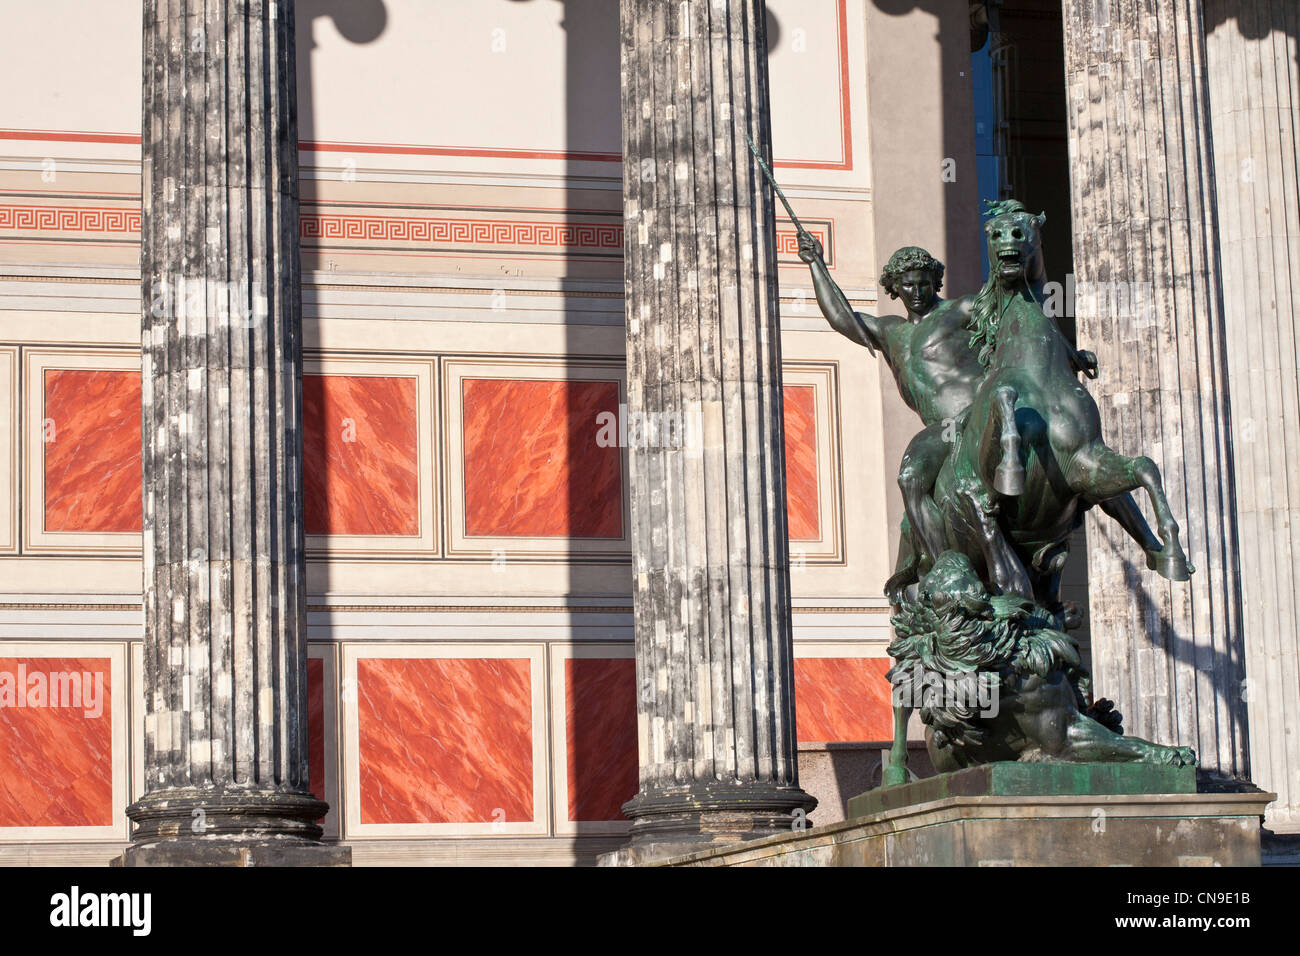 Germany, Berlin, Museum Island, Altes Museum, home to a collection of ancient works, building erected in 1828 by - Stock Image